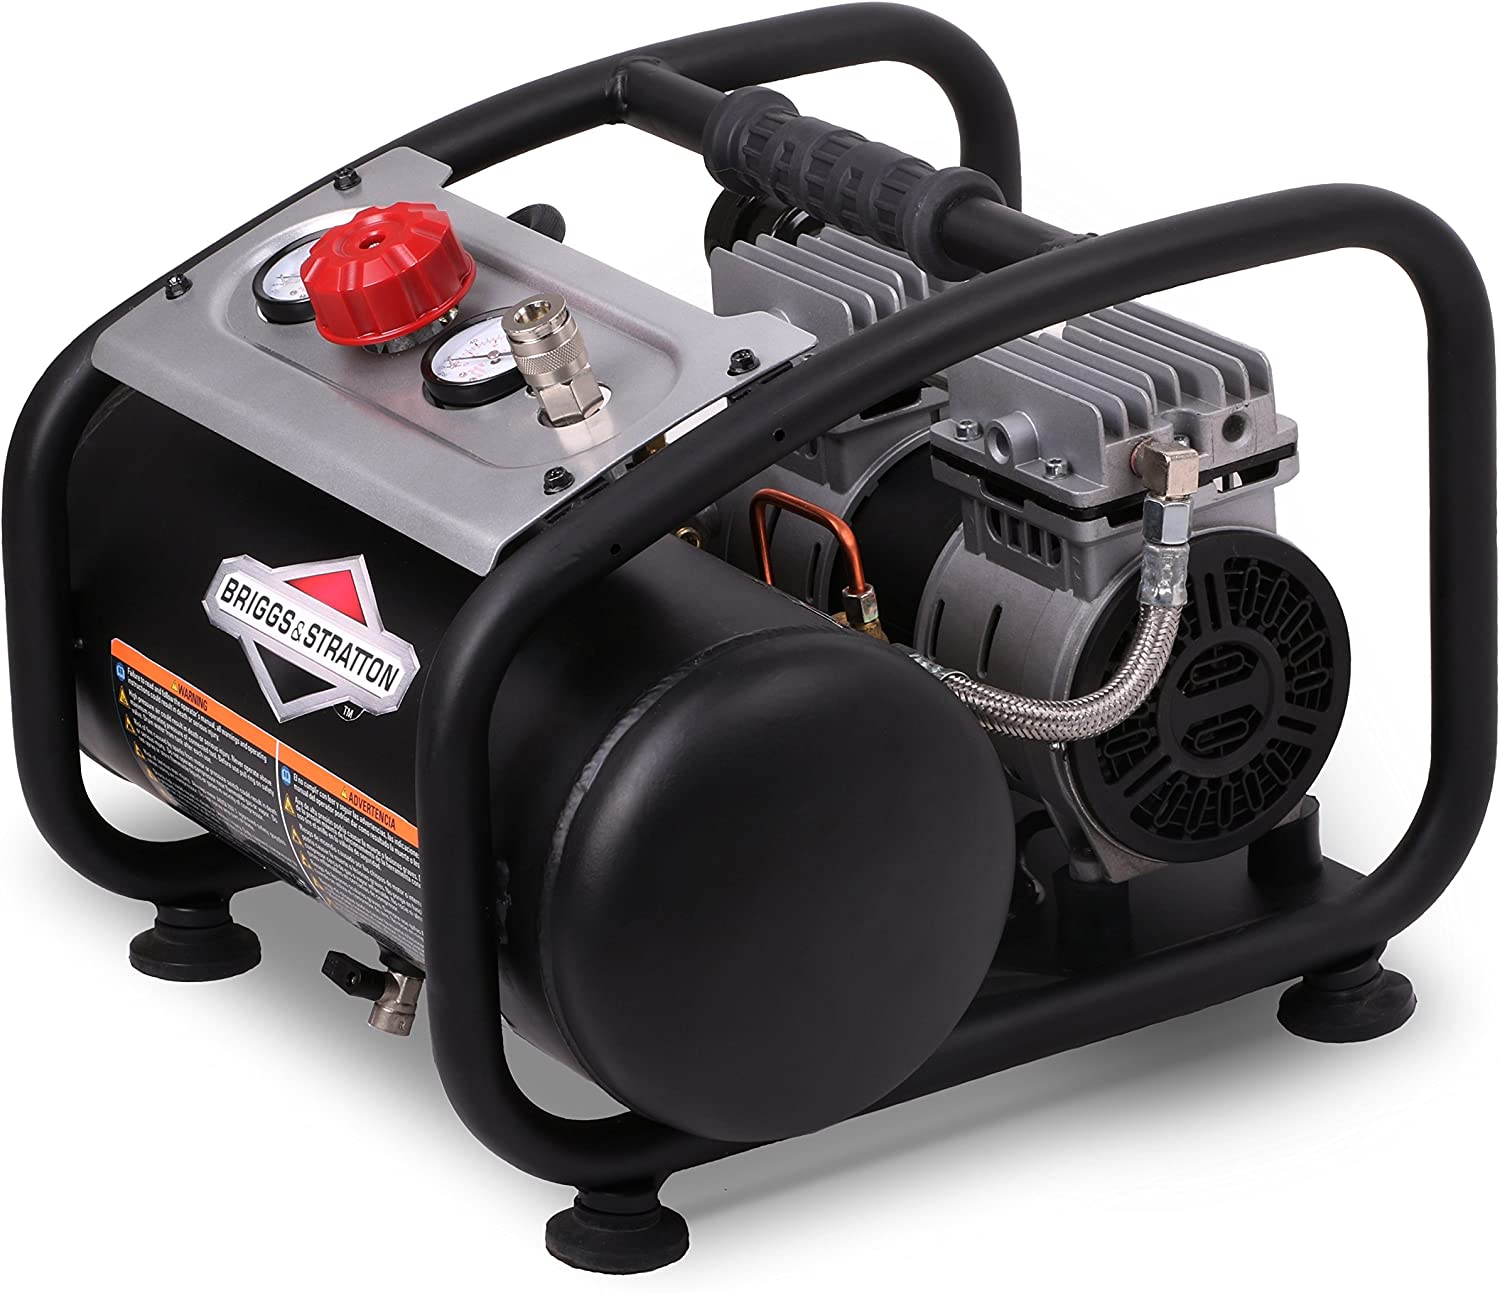 Briggs Stratton 3-Gallon Quiet Power Technology Air Compressor 074027-00